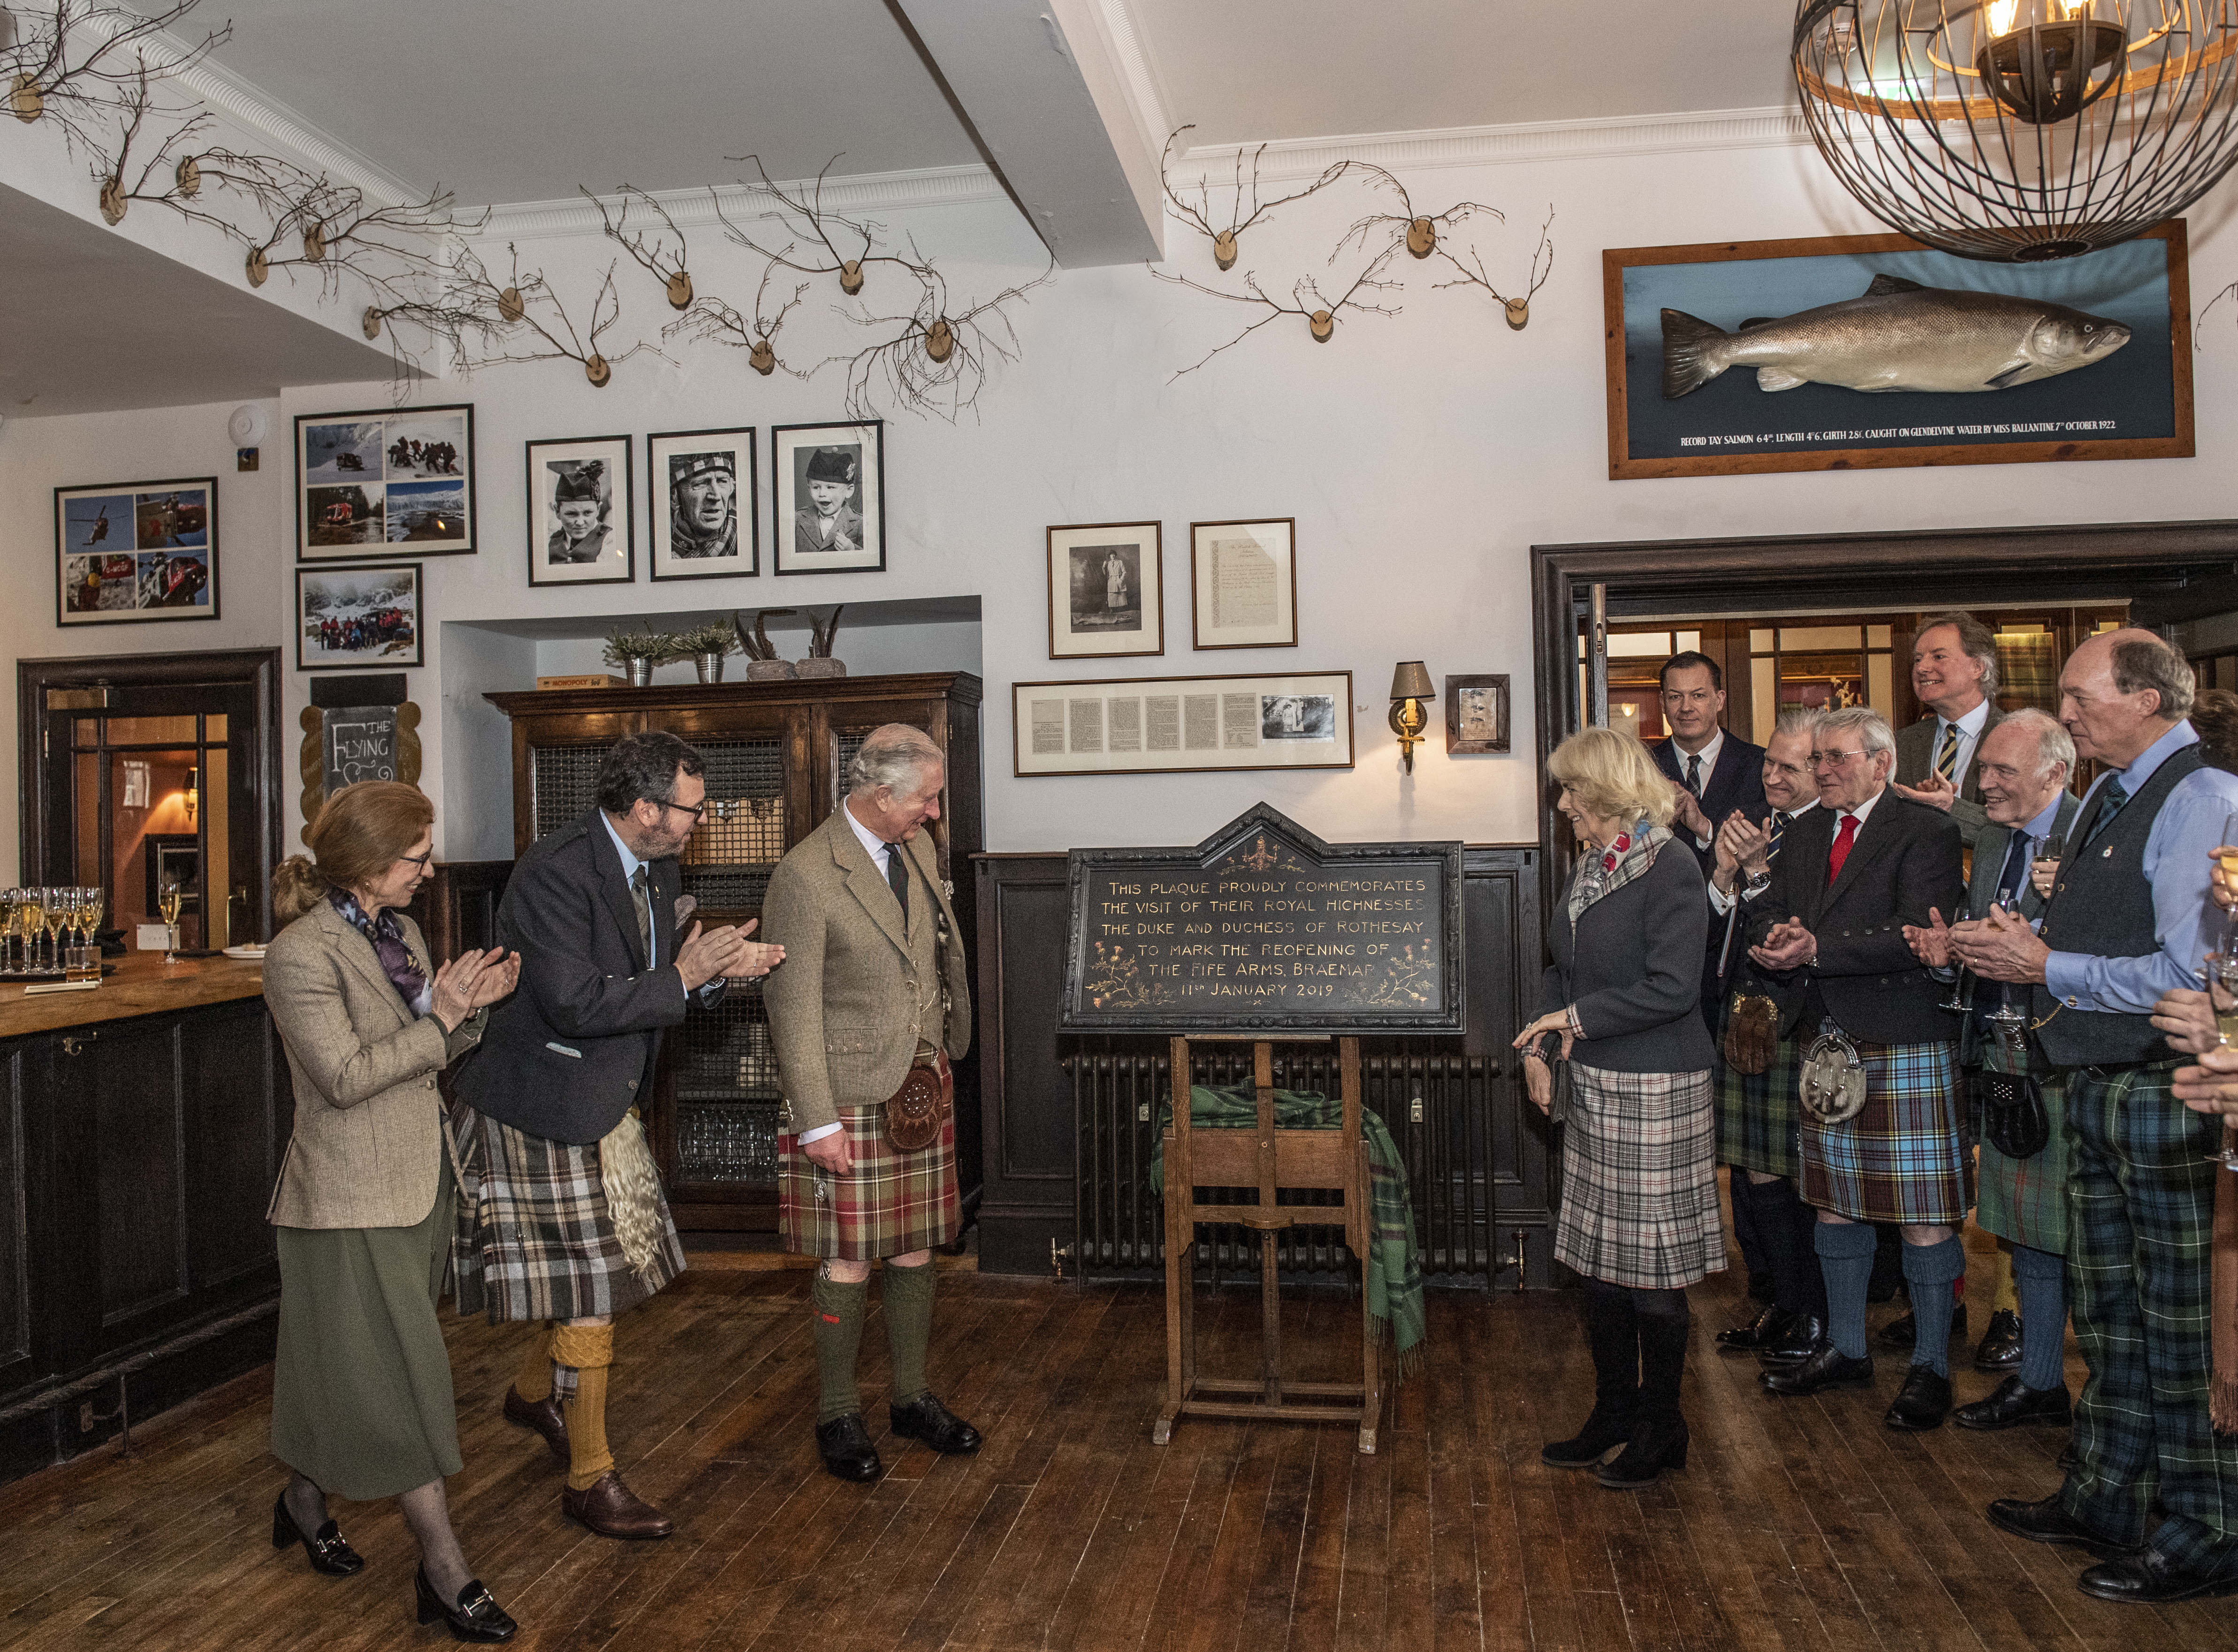 Their Royal Highnesses The Duke and Duchess of Rothesay officially open the refurbished Fife Arms.